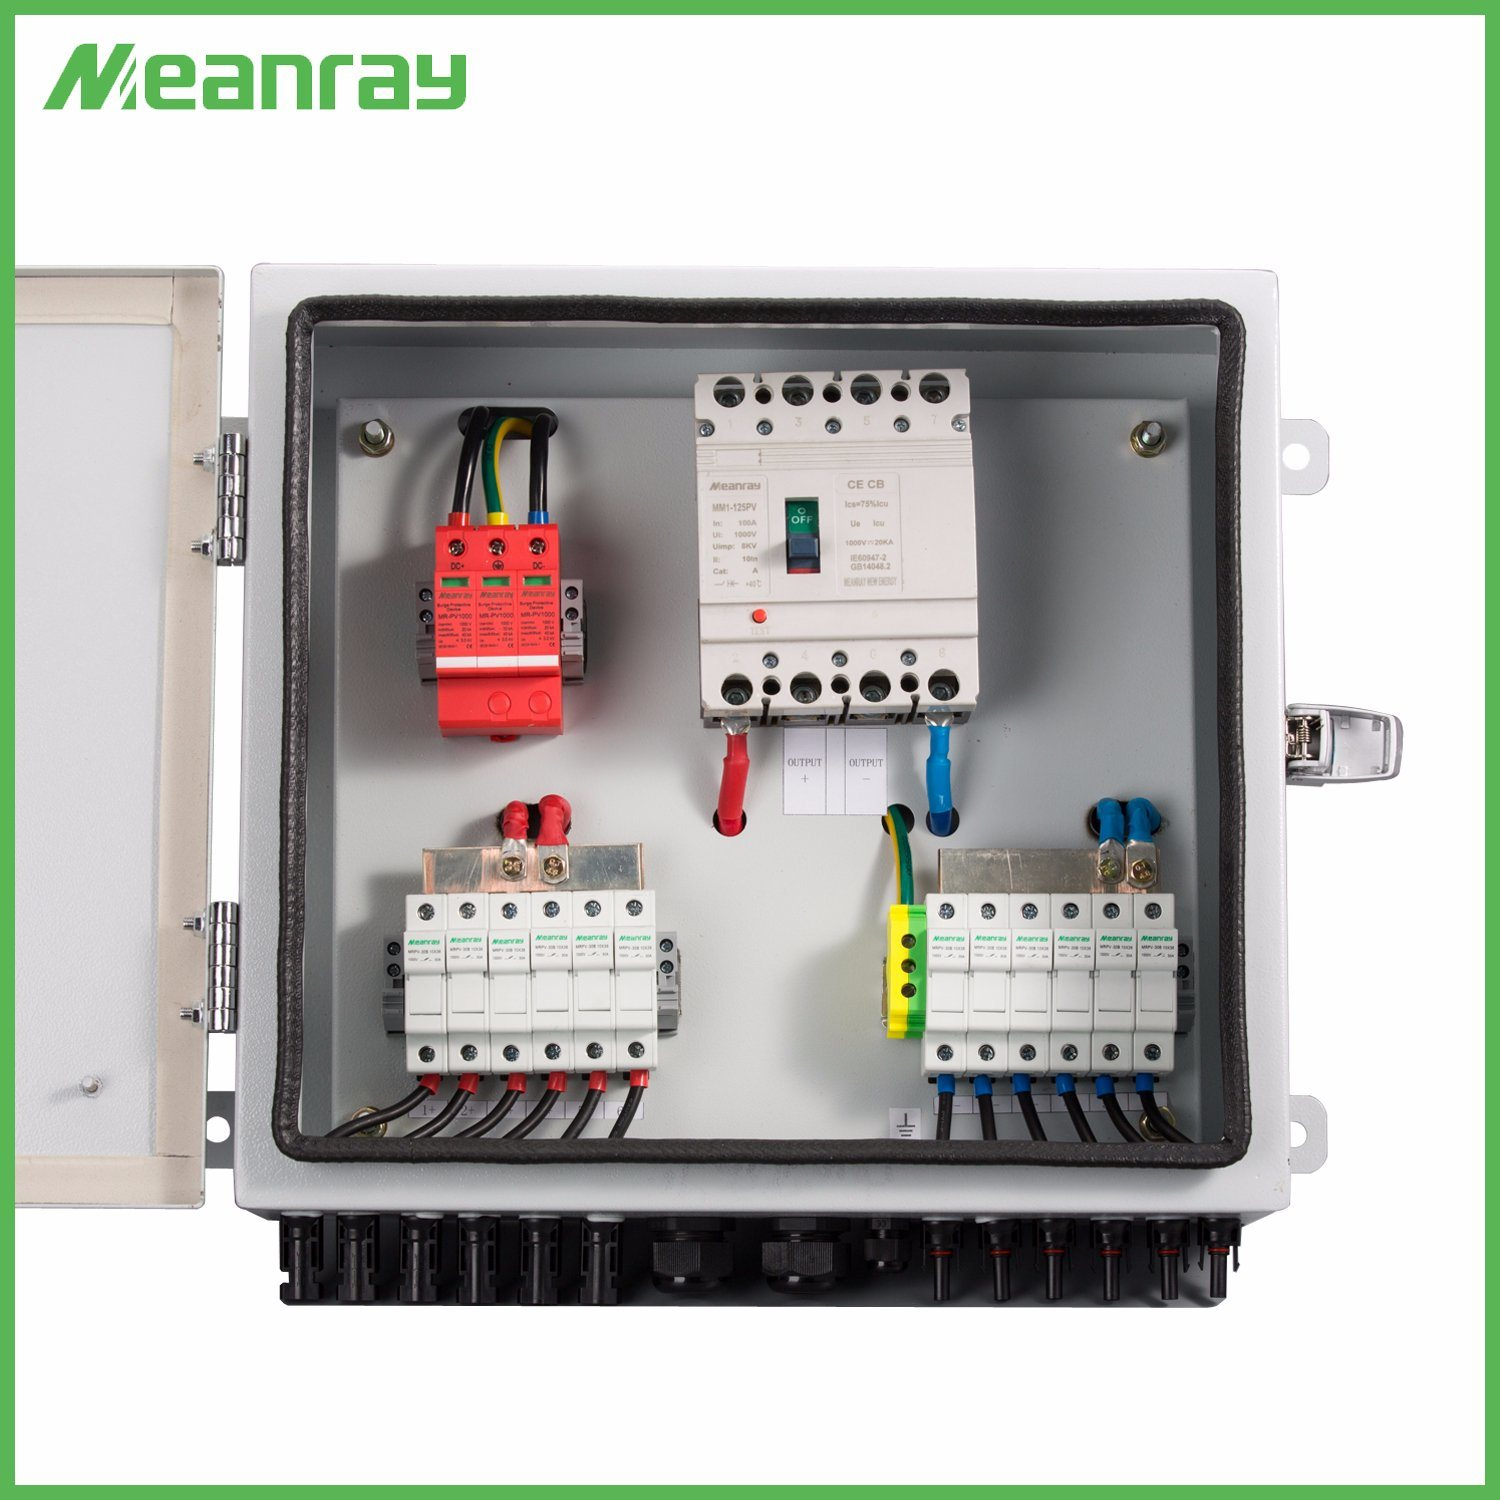 China 6 Strings Solar PV Combiner Box 2-16ways with 600V SPD and 1000V 16A  Fuse - China 6 Stings Solar PV Combiner Box, Solar Lightning Protection  Monitoring | Pv Fuse Box |  | YUEQING MEANRAY ELECTRIC CO., LTD.